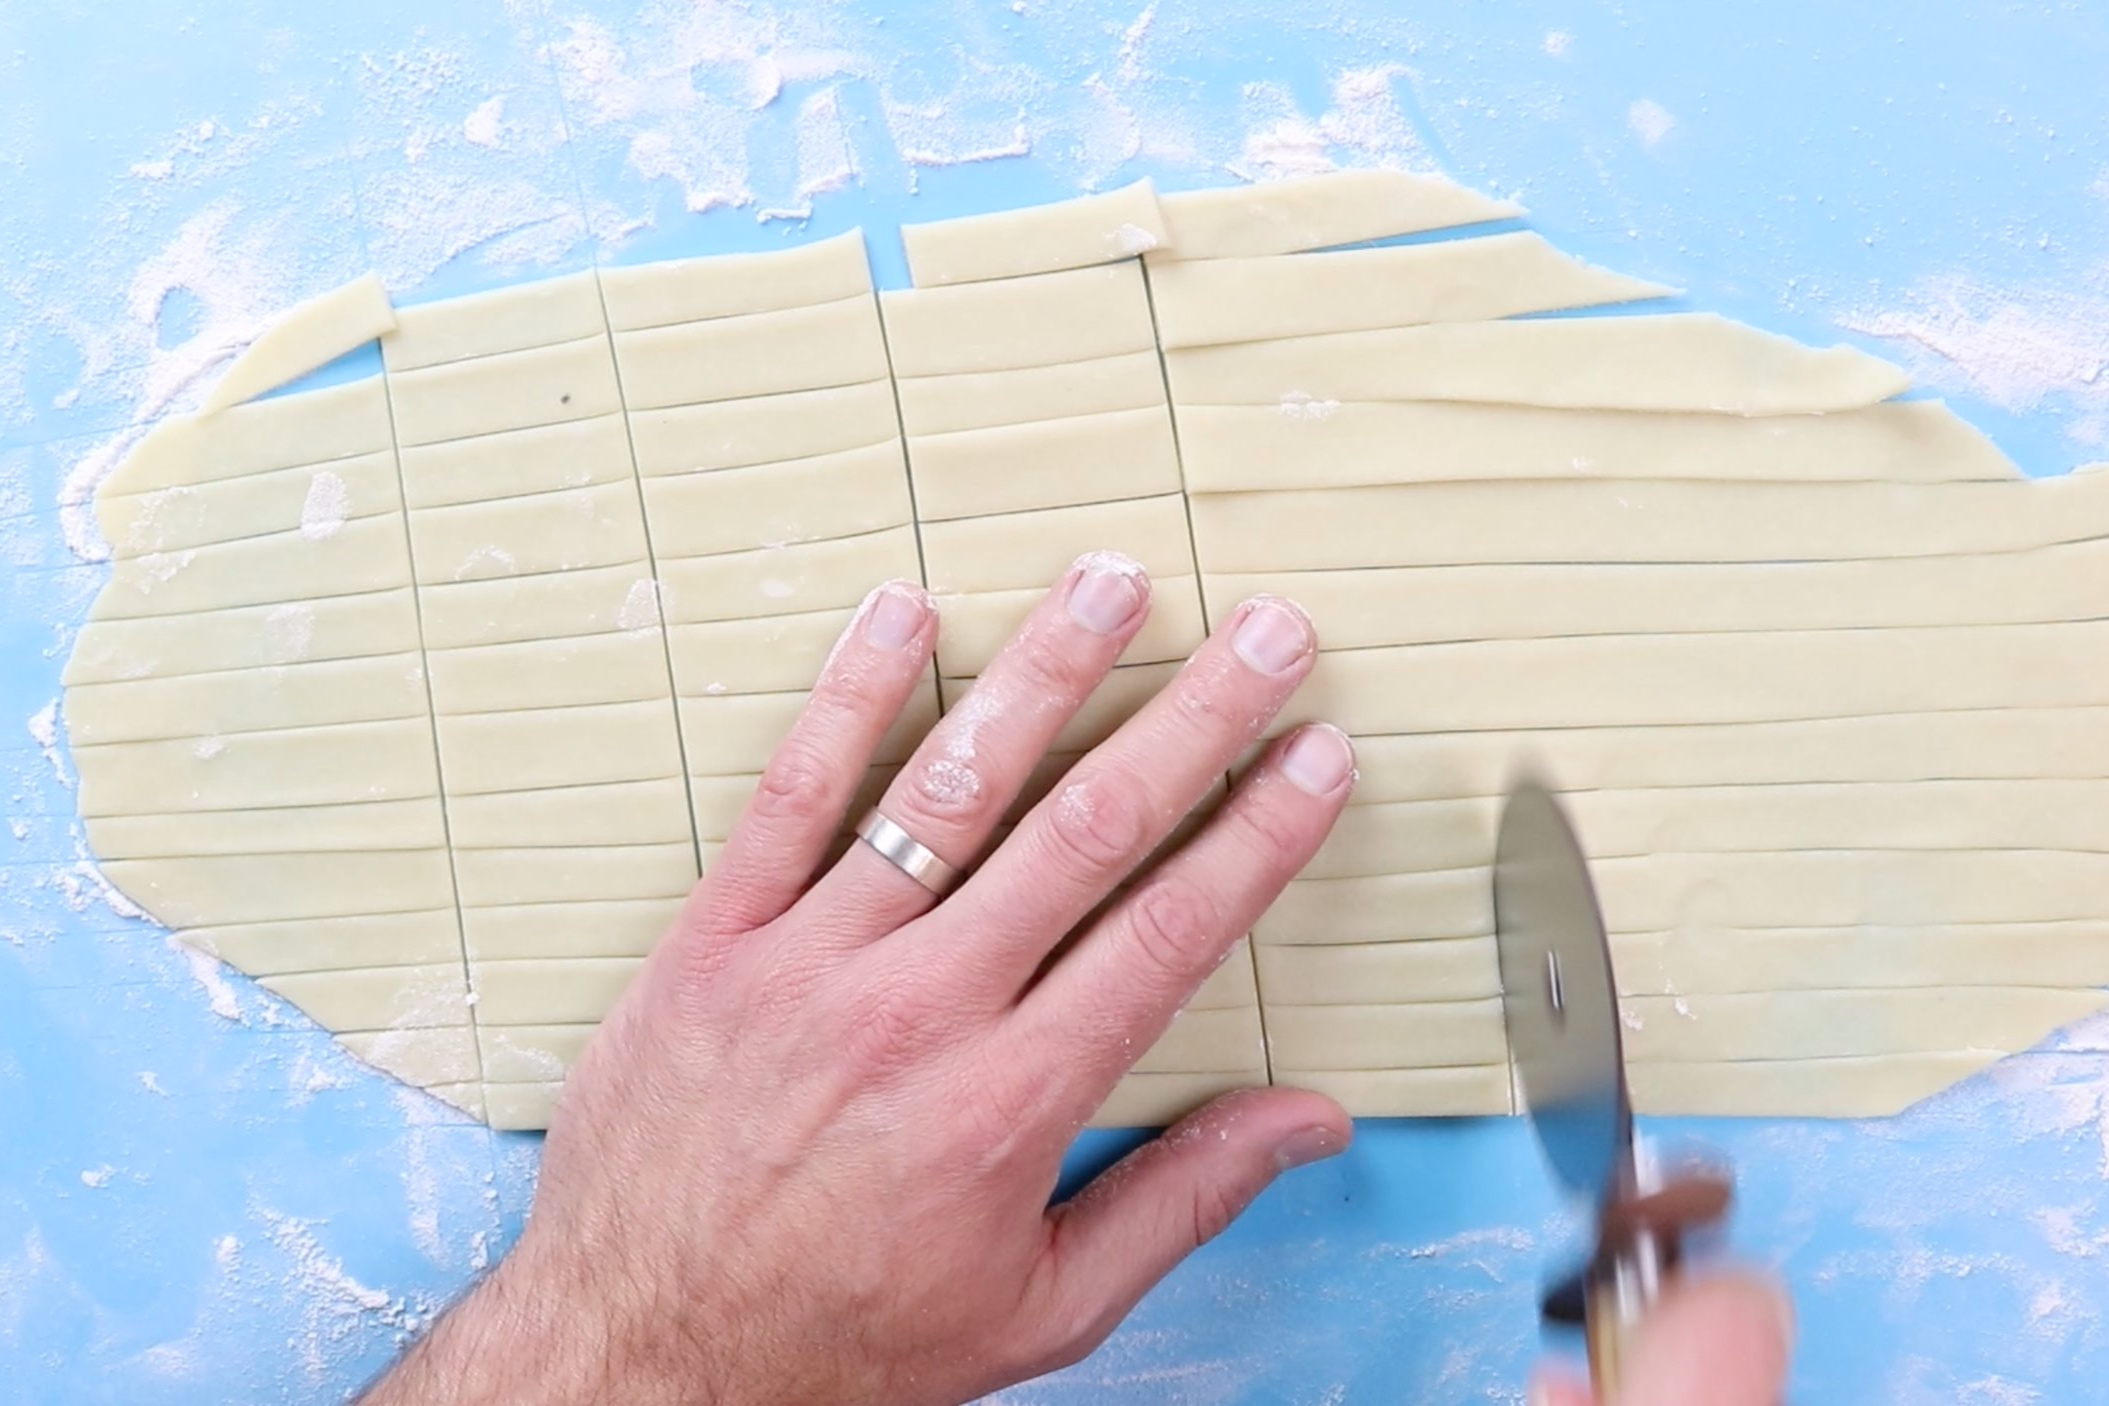 11. Roll out remaining 1/2 of pie crust and cut into small strips to lattice on top of pies,or cut 2 1/2 inch circles to cover the pies. If using the circle cut outs, make sure to poke a vent hole in the top to allow the steam to escape. -